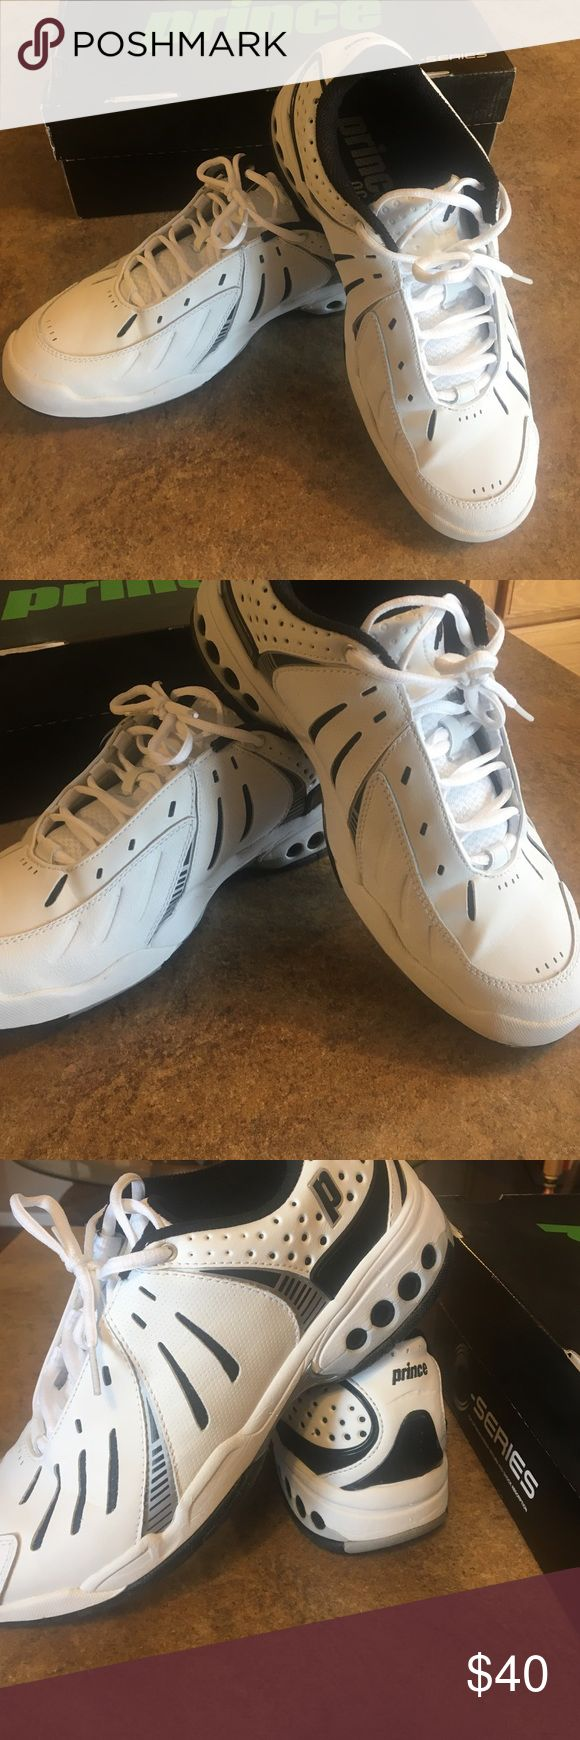 Prince Tennis Shoes New! Only tried on! Prince Shoes Athletic Shoes